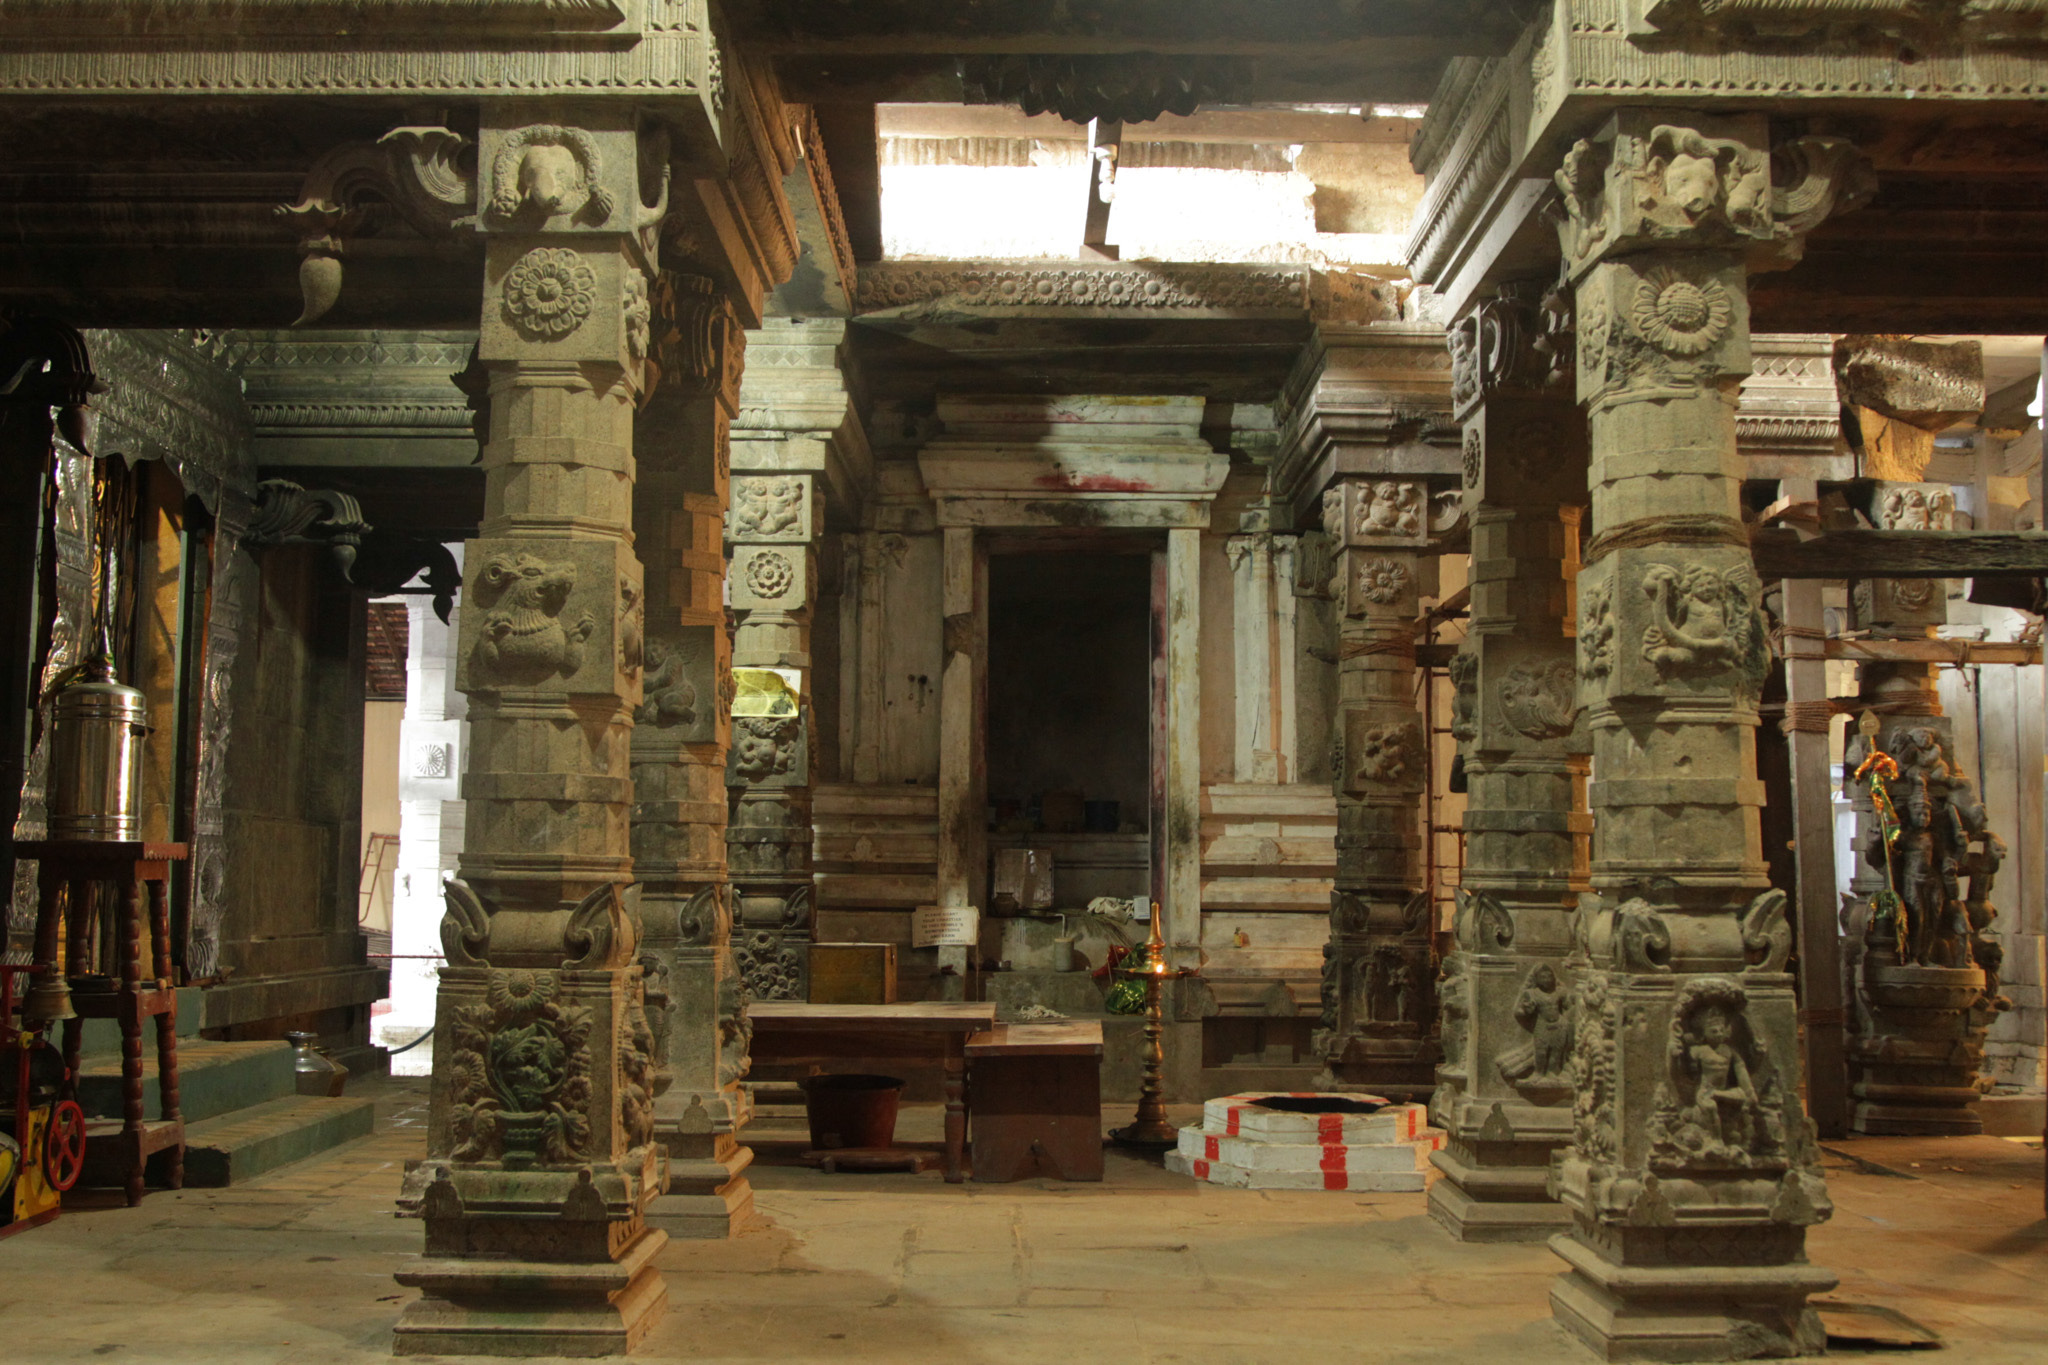 Maviddapuram Kandaswamy Kovil is a kovil in Jaffna